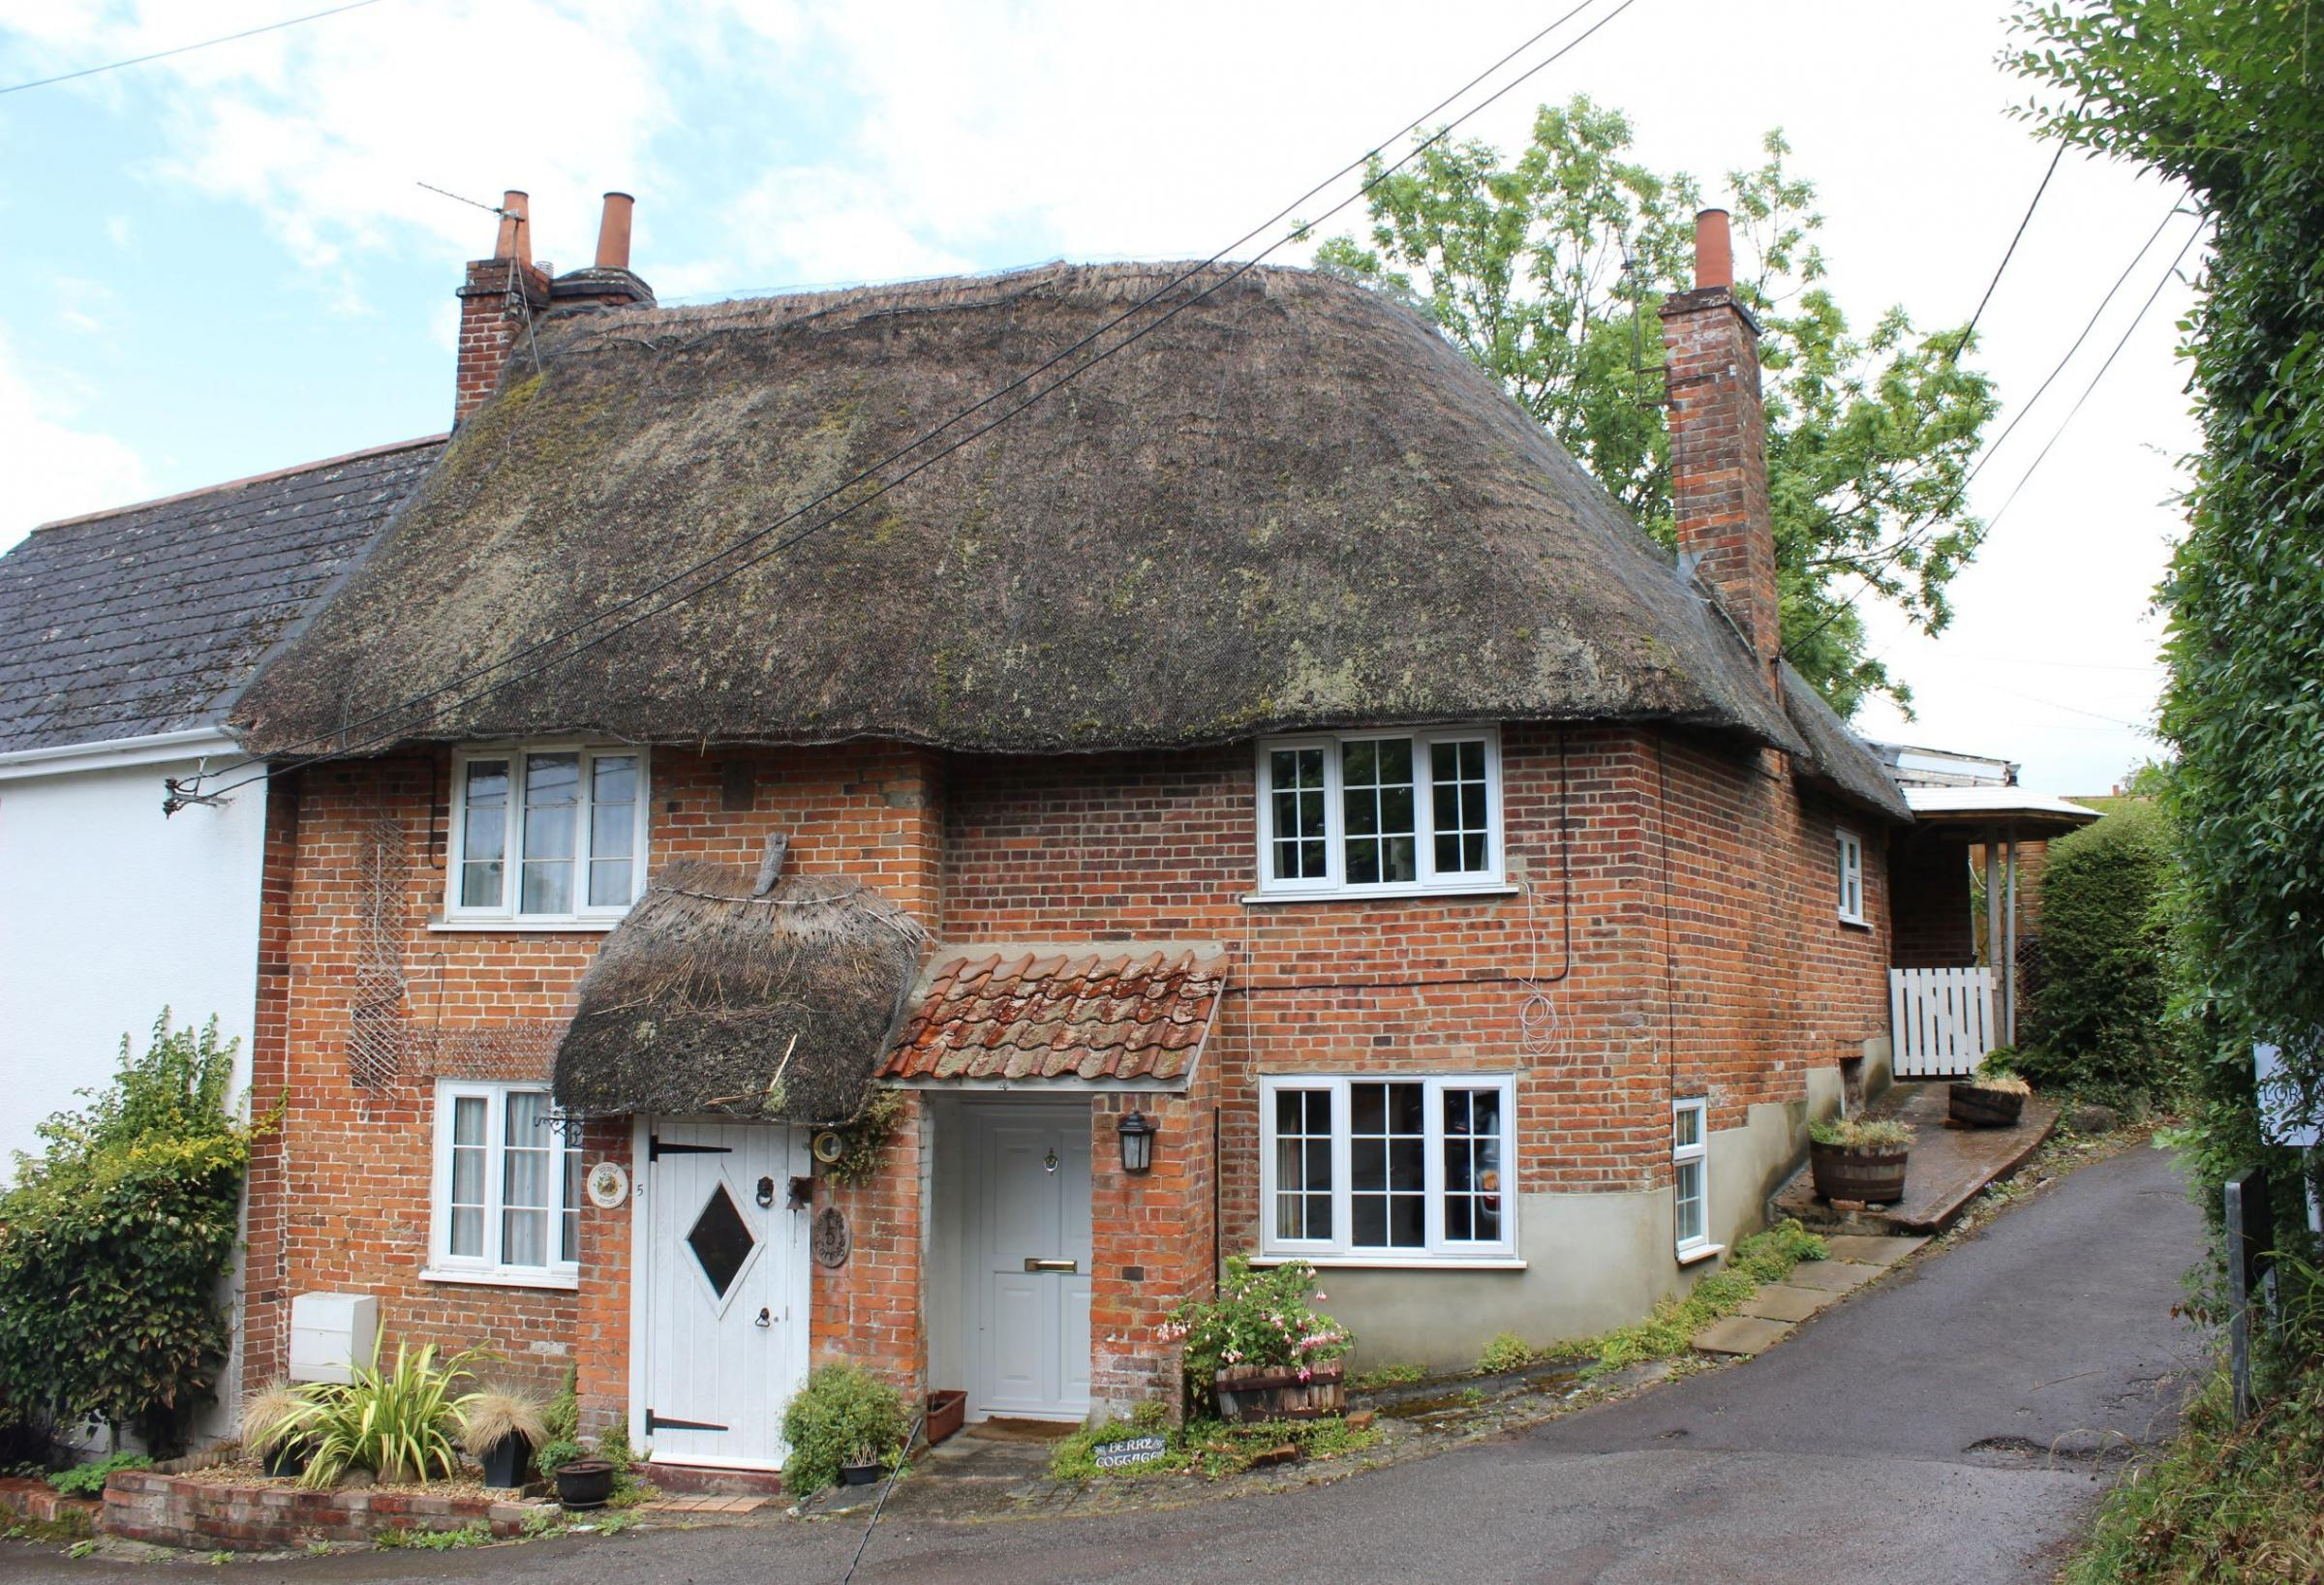 This three bedroom thatched cottage in Bratton has just been reduced in guide price.